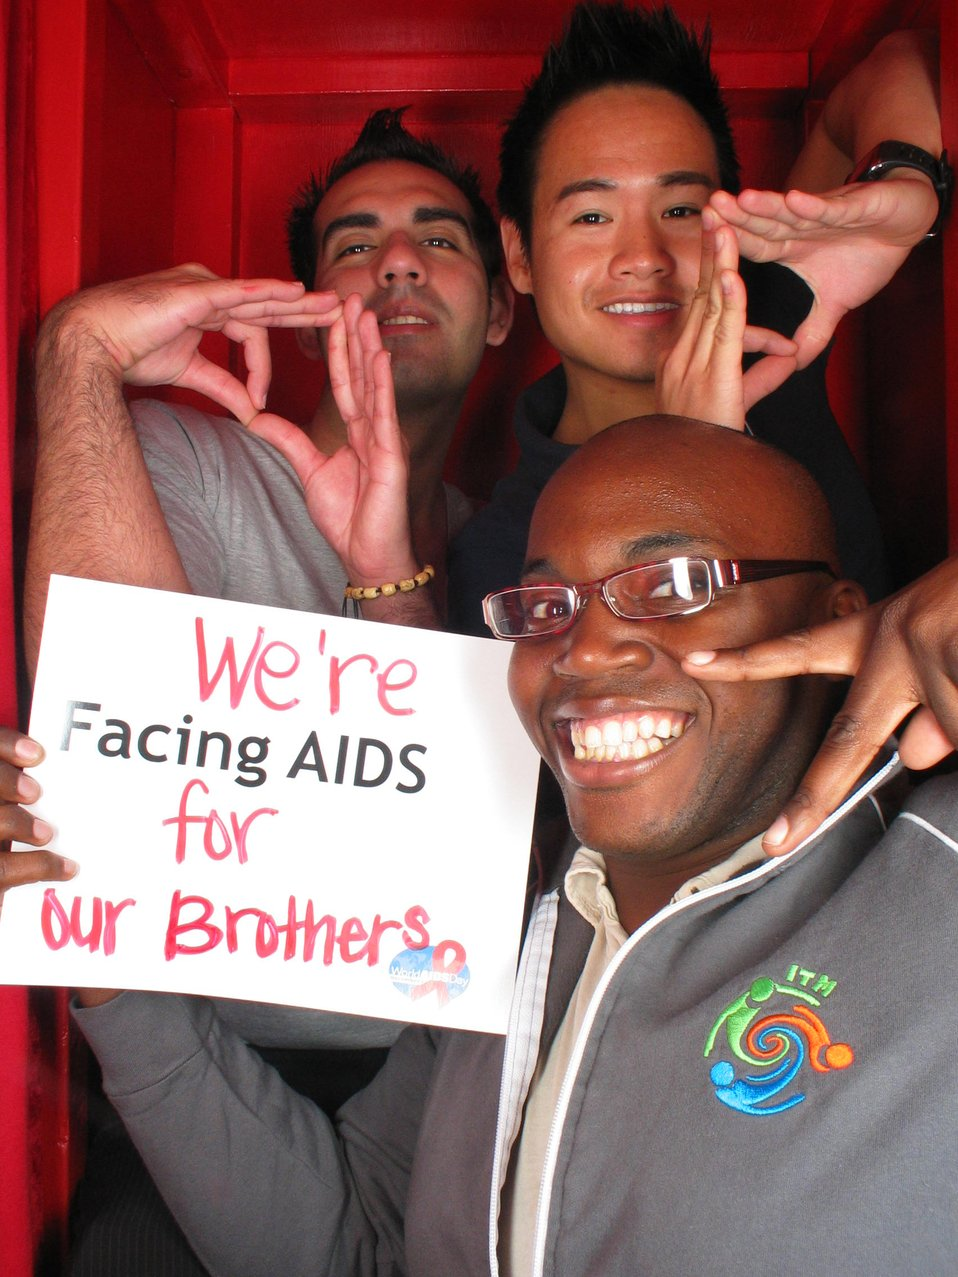 We're Facing AIDS for our brothers.